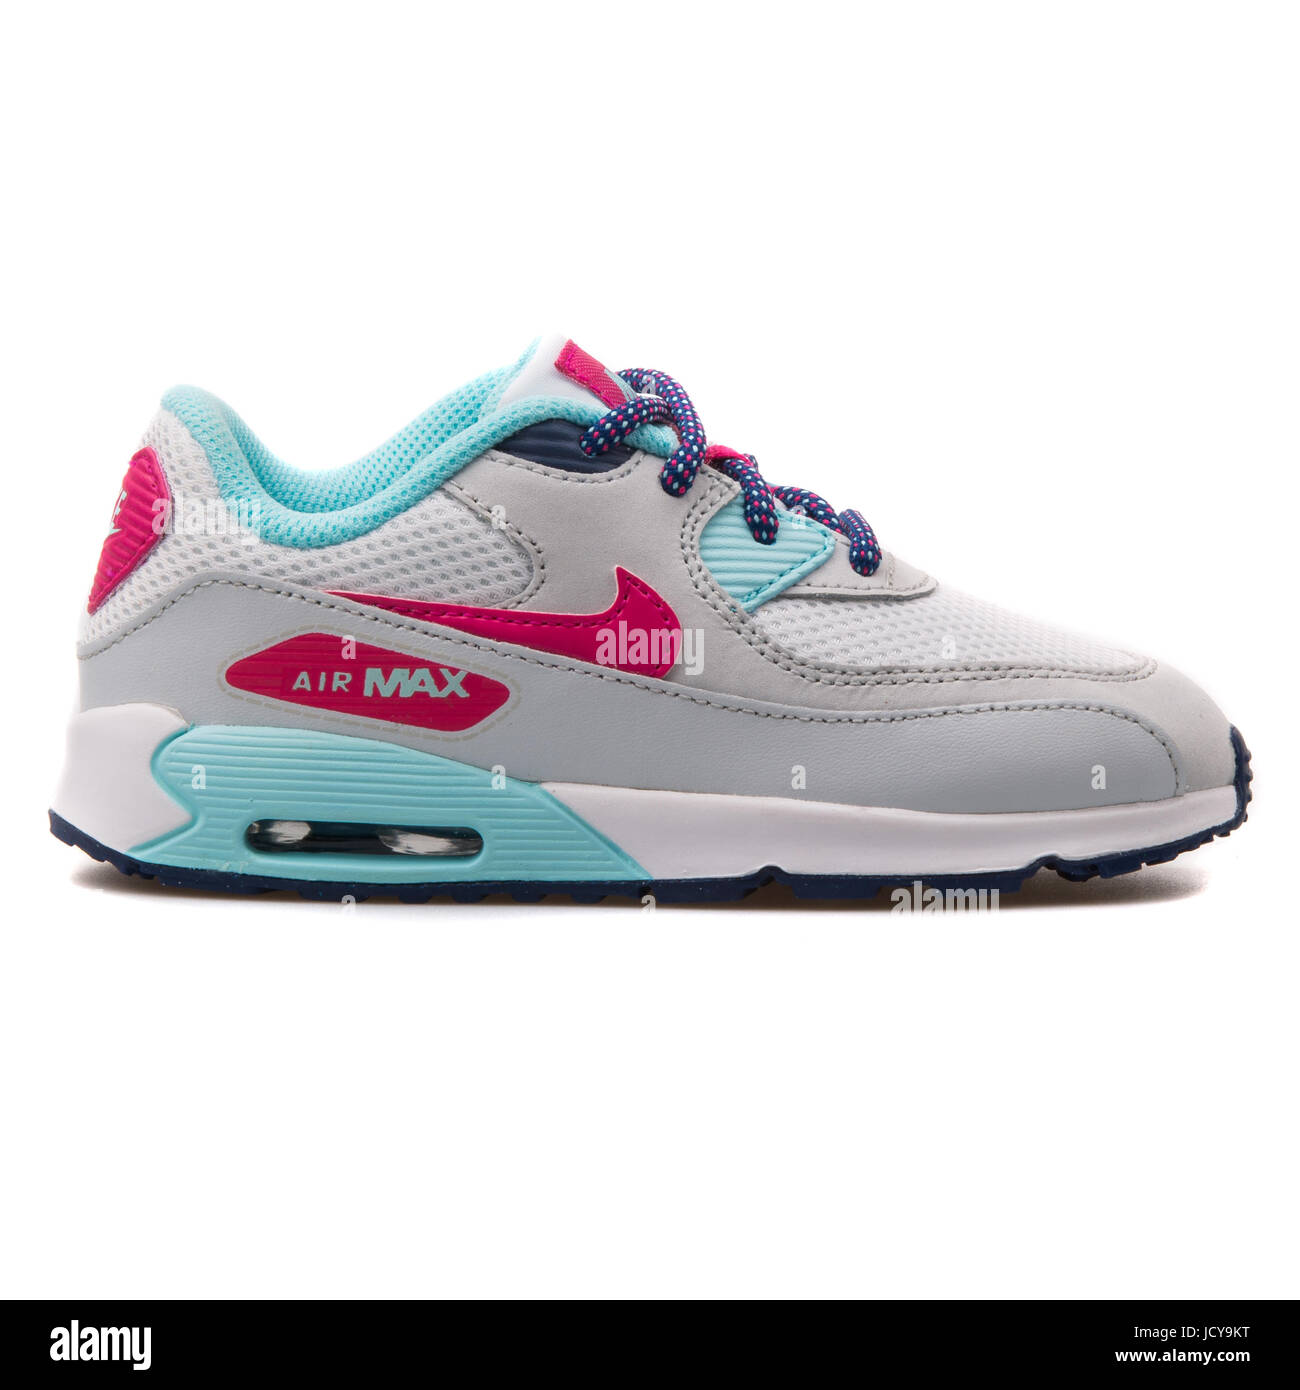 buy popular b8922 a126e Nike Air Max 90 Mesh (TD) White, Grey, Pink and Turquoise Toddler s Running  Shoes - 724857-102